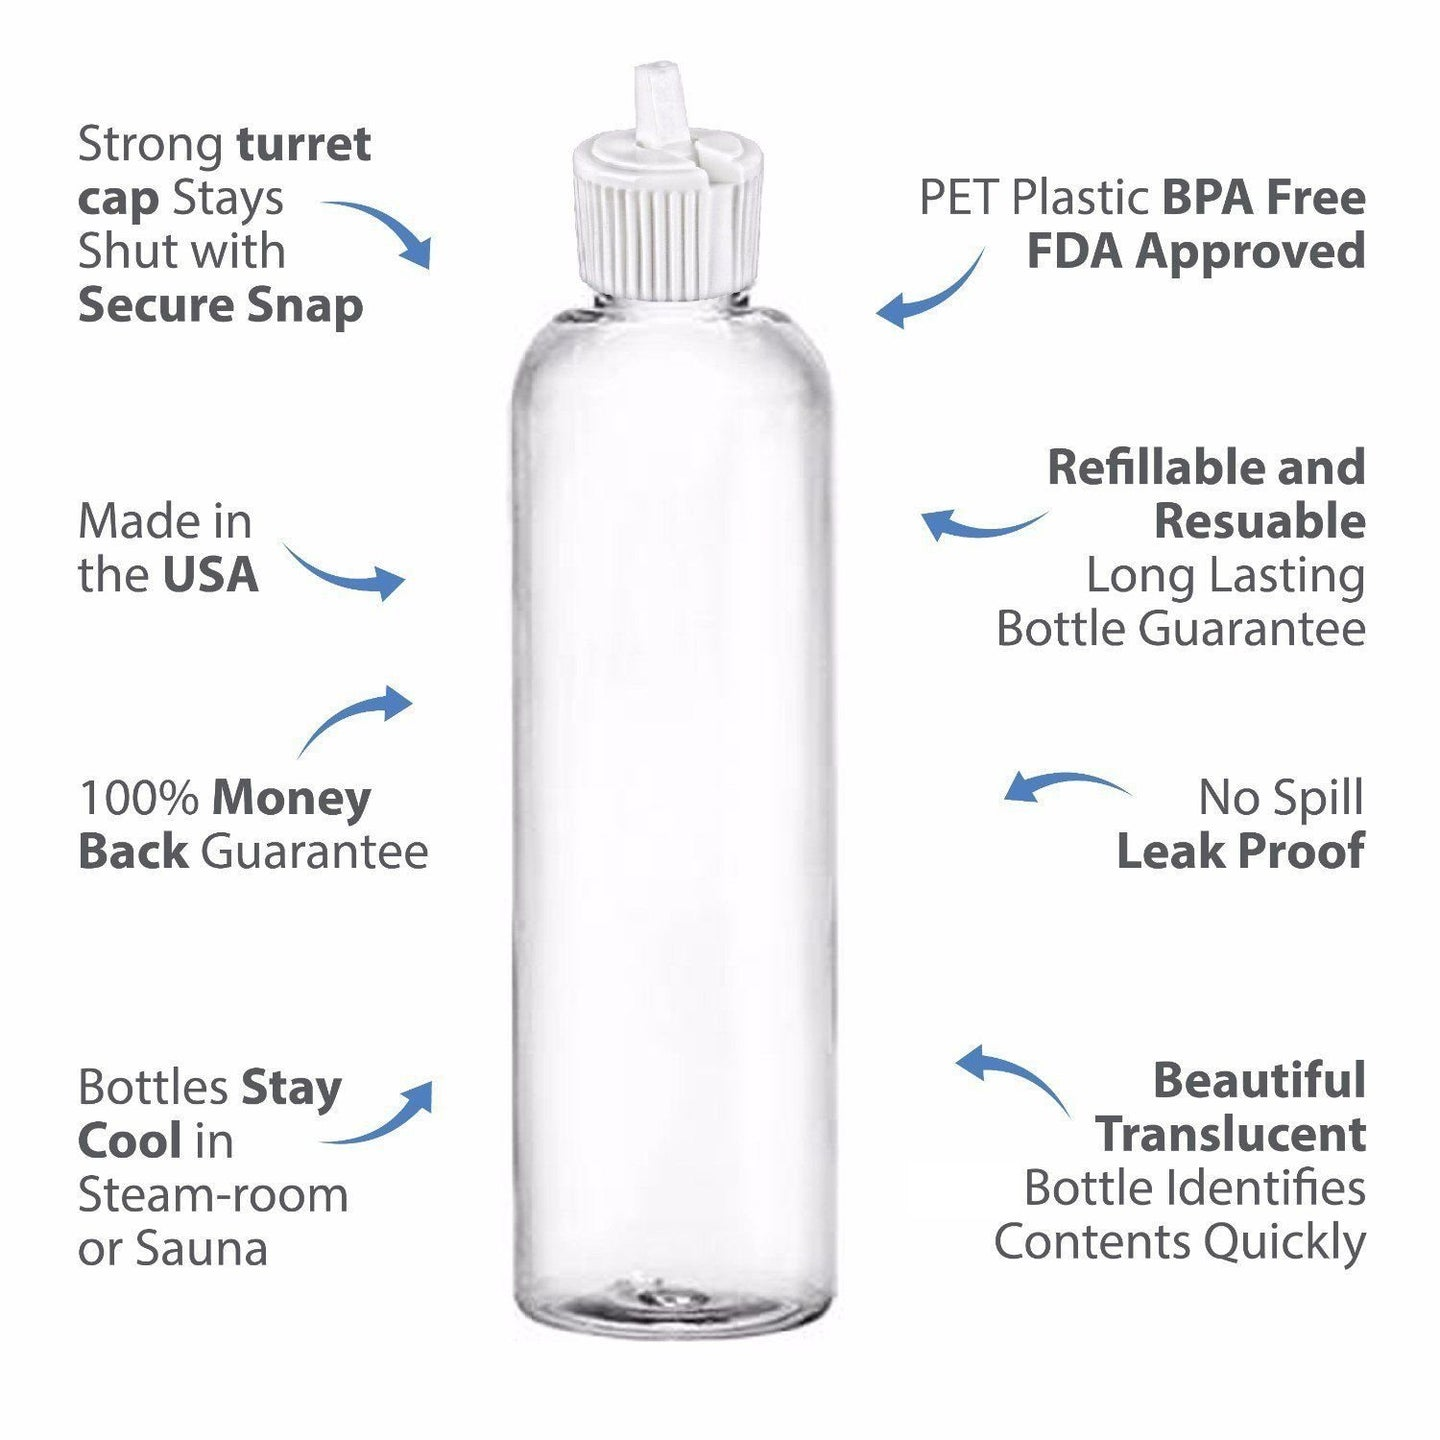 MoYo Natural Labs 4 oz Squirt Bottles, Squeezable Empty Travel Containers, BPA Free PET Plastic for Essential Oils and Liquids, Toiletry/Cosmetic Bottles (Neck 20-410) (Pack of 12, Clear)